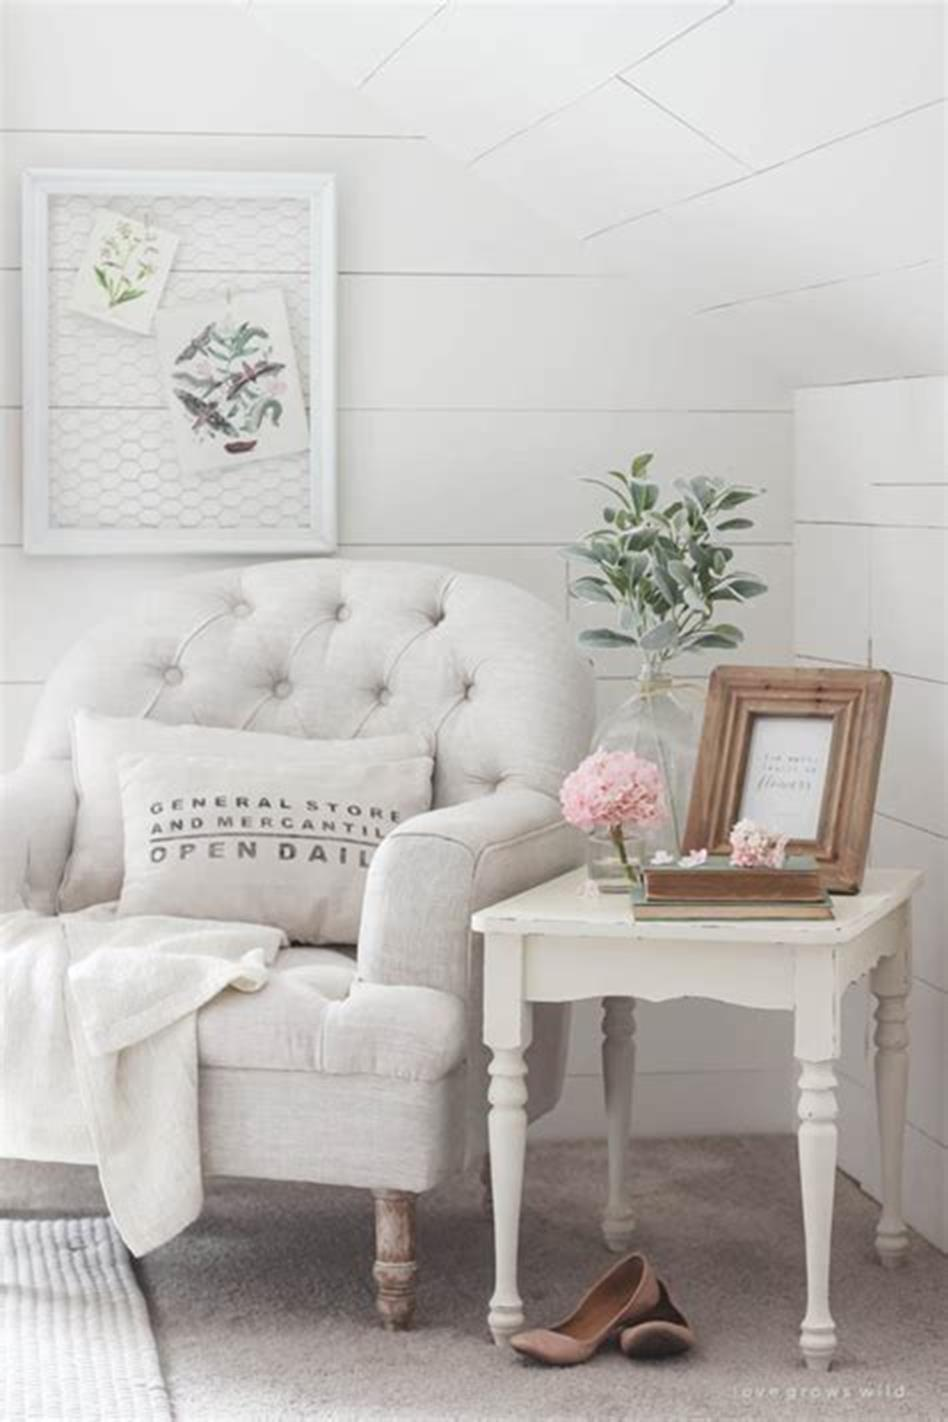 37 Beautiful Farmhouse Spring Decorating Ideas On a Budget for 2019 23